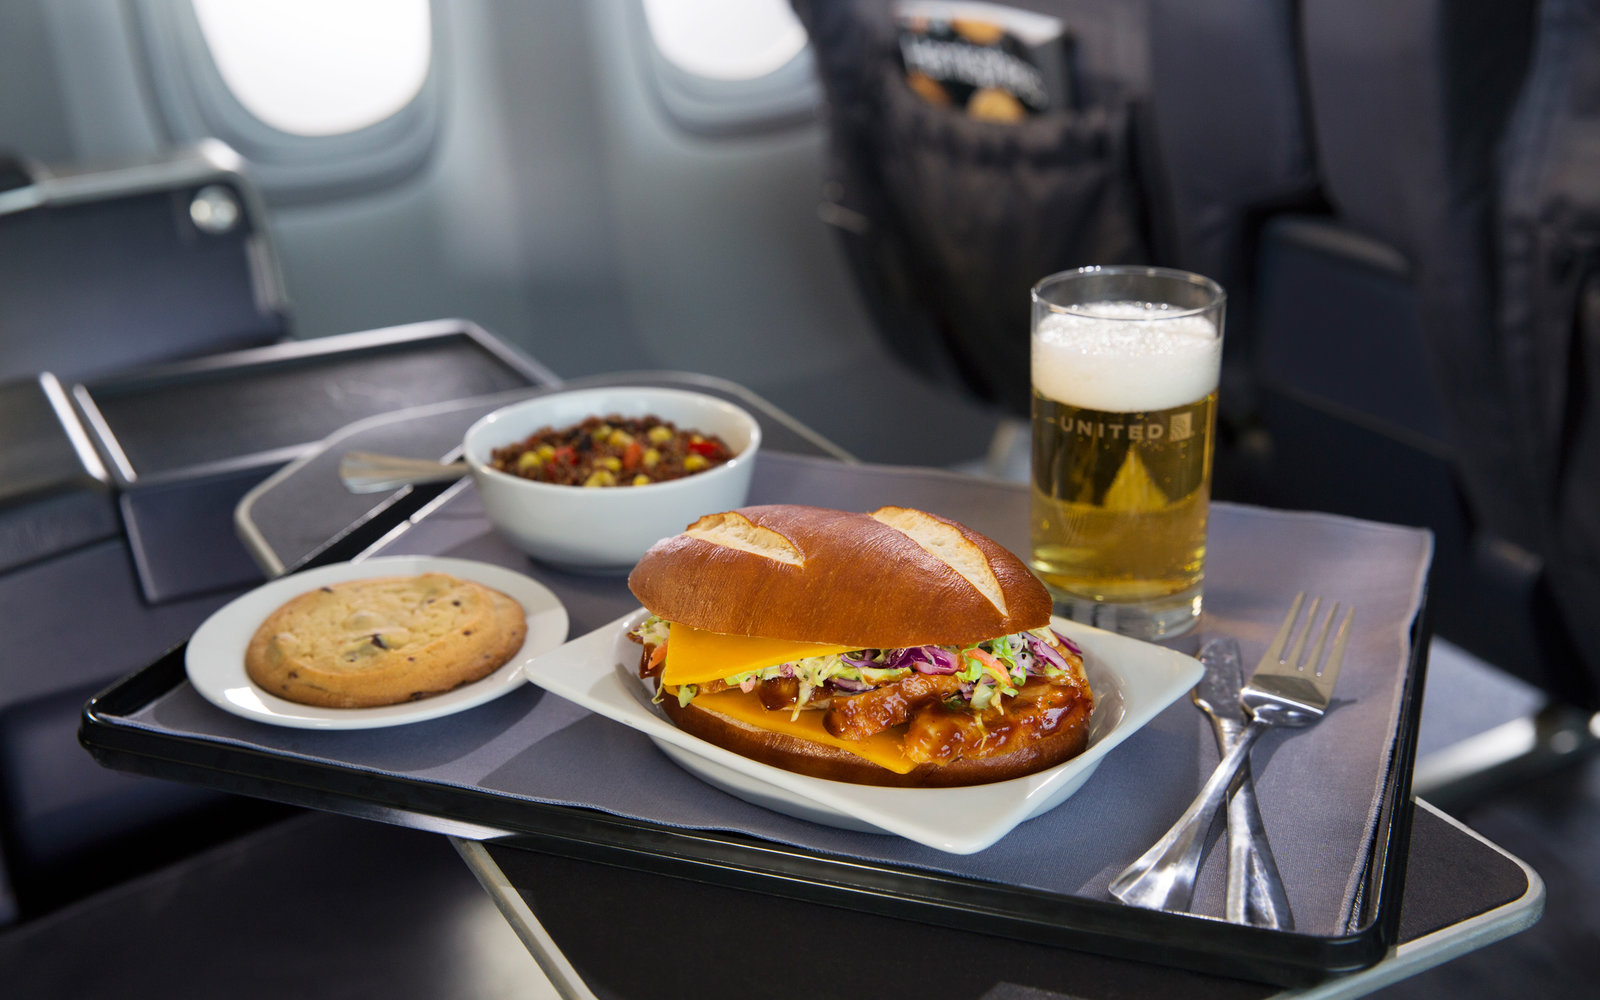 United Airlines Food